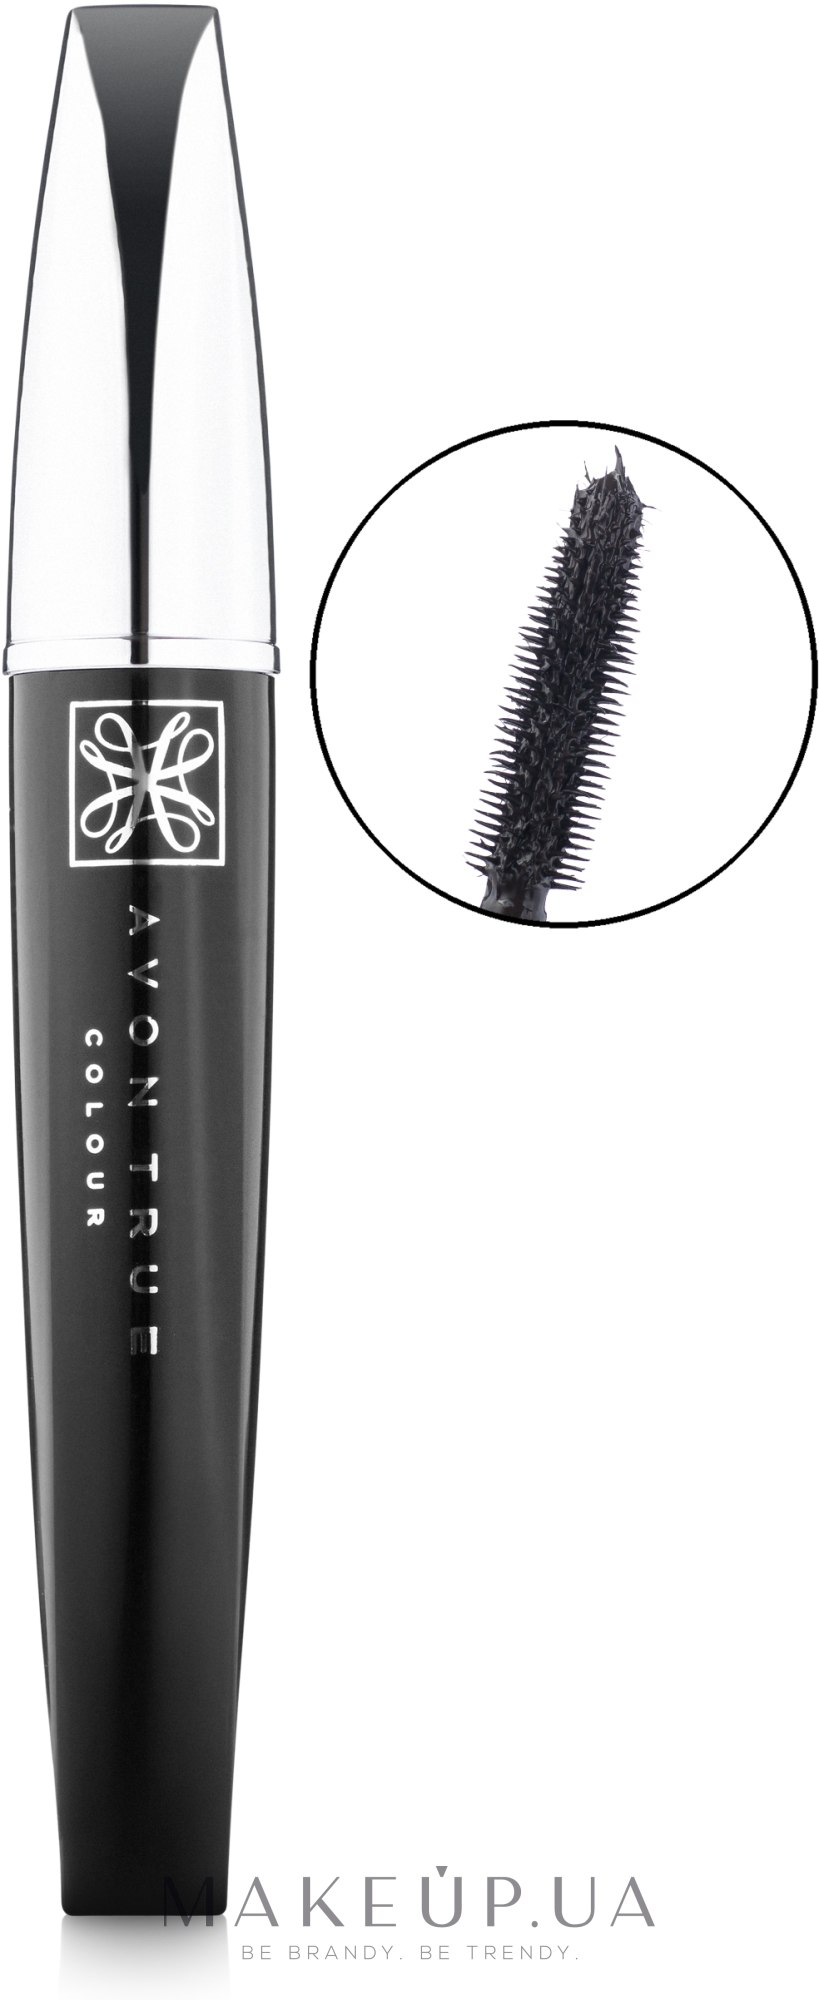 "Тушь для ресниц ""Супердлина. Акцент"" - Avon Superextend Winged Out Mascara — фото Blackest Black"